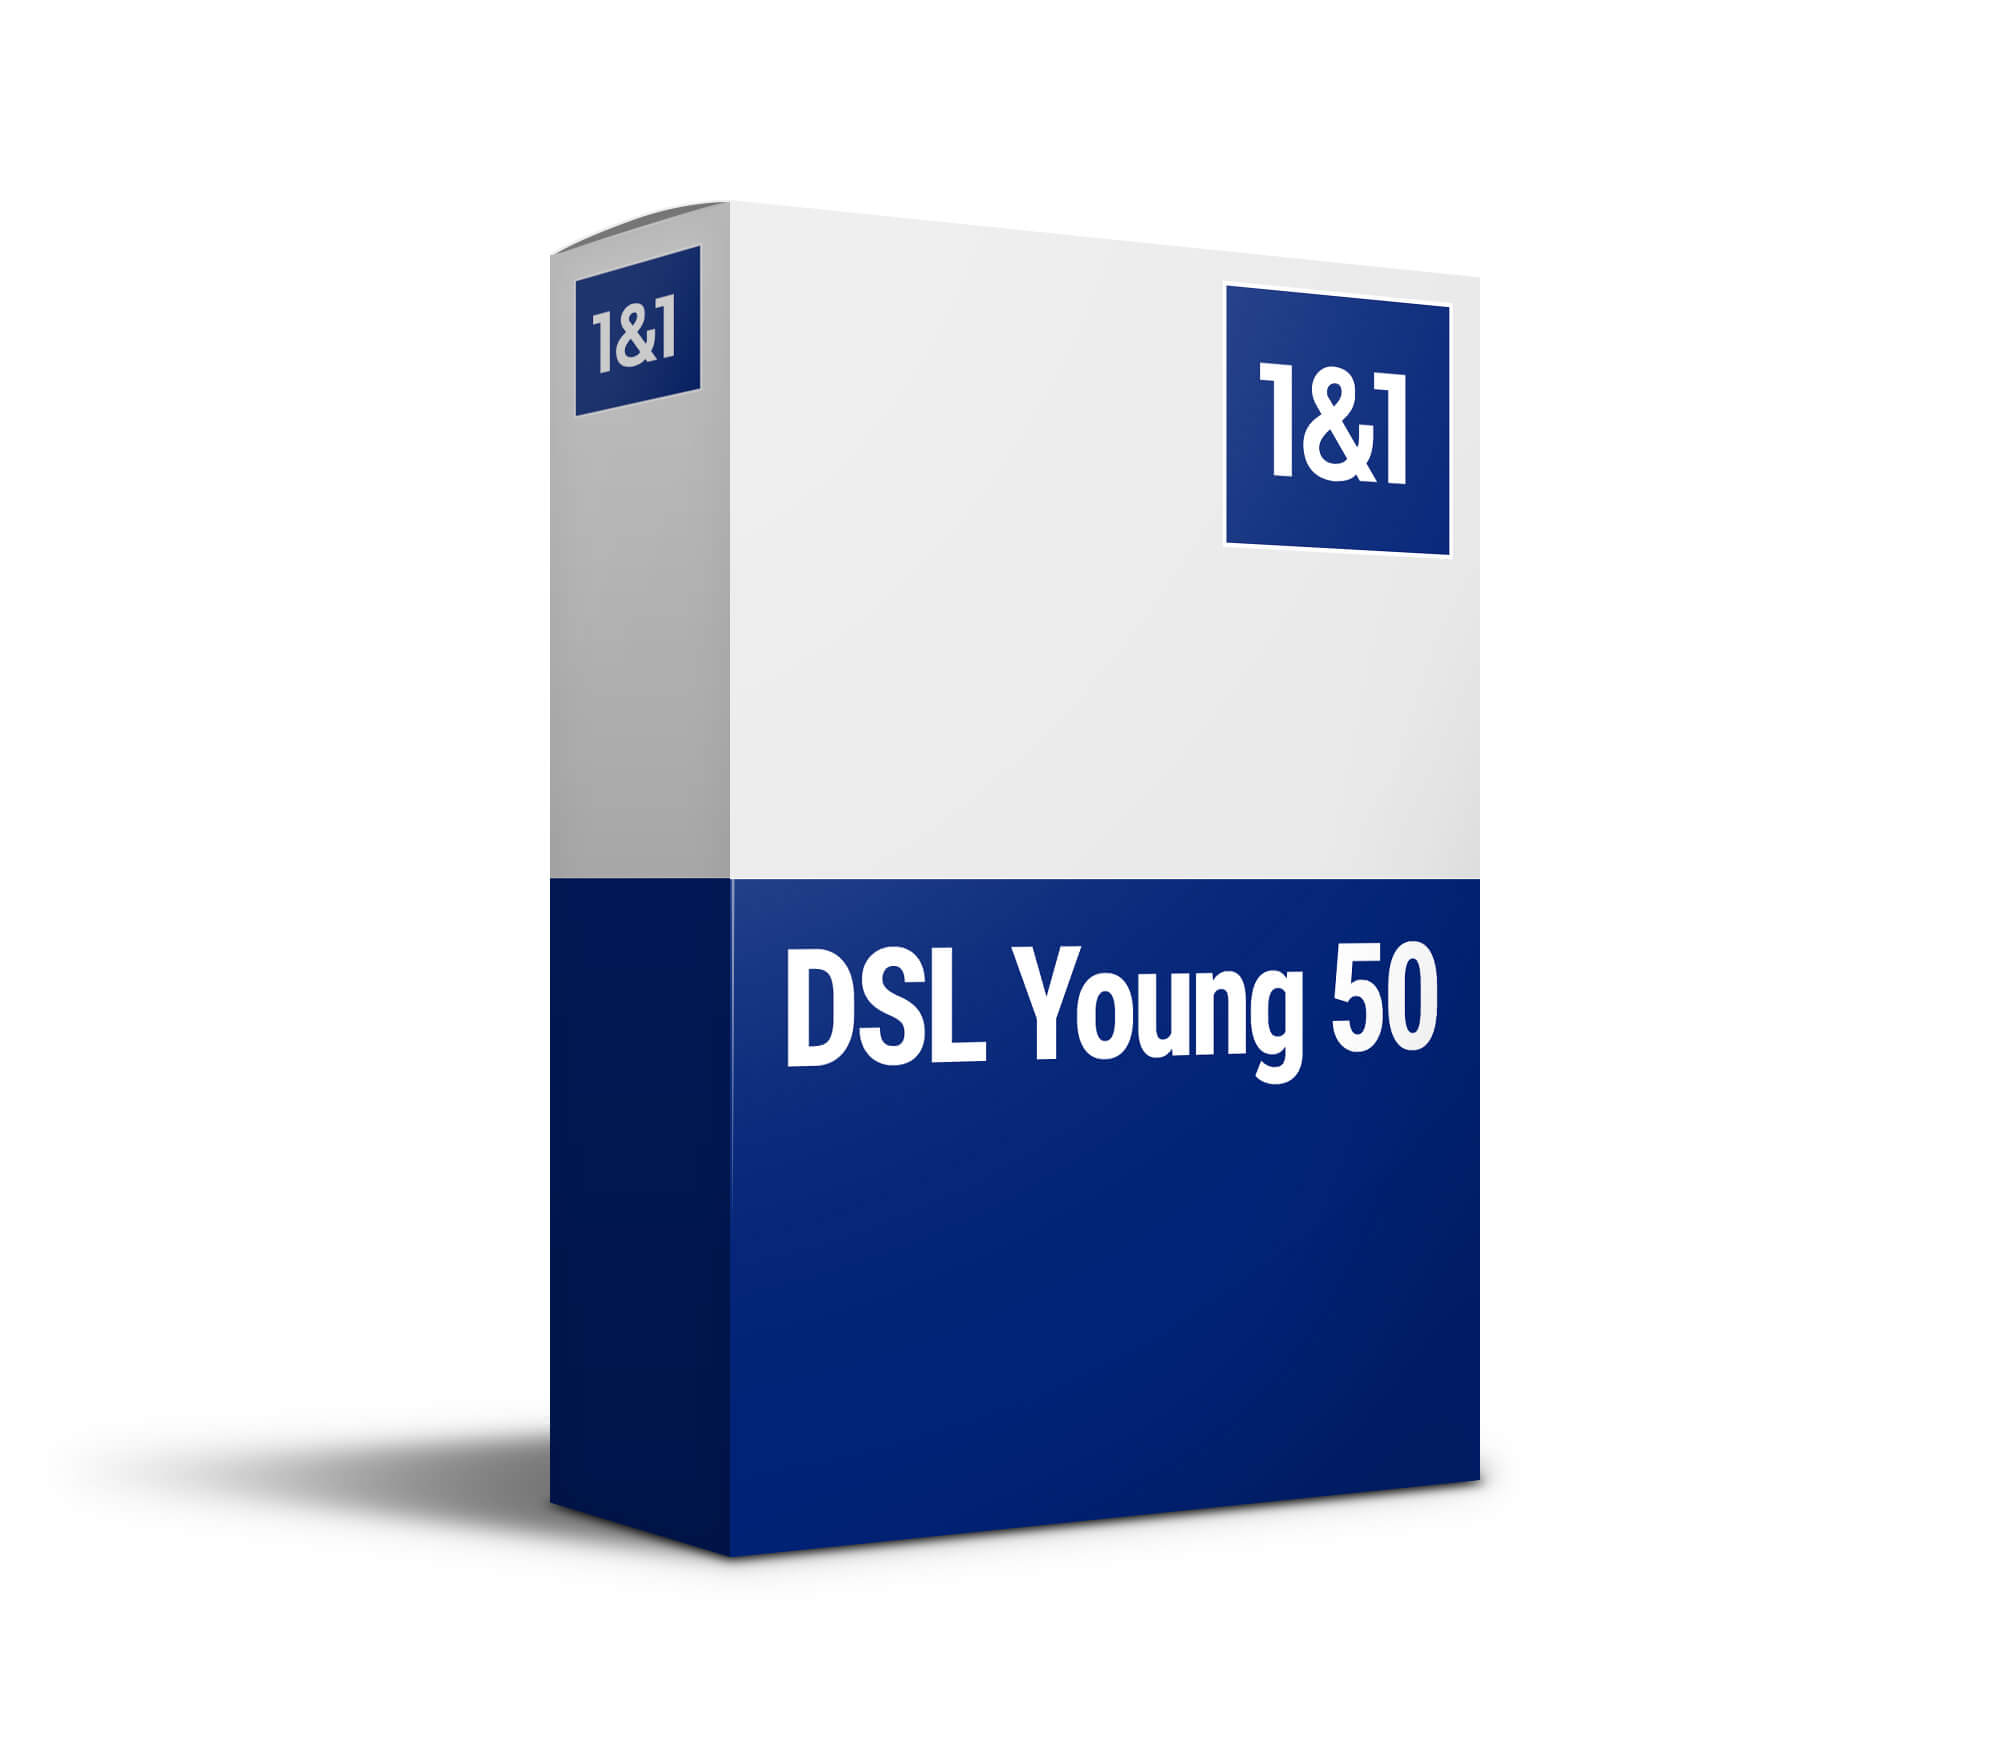 DSL Young 50